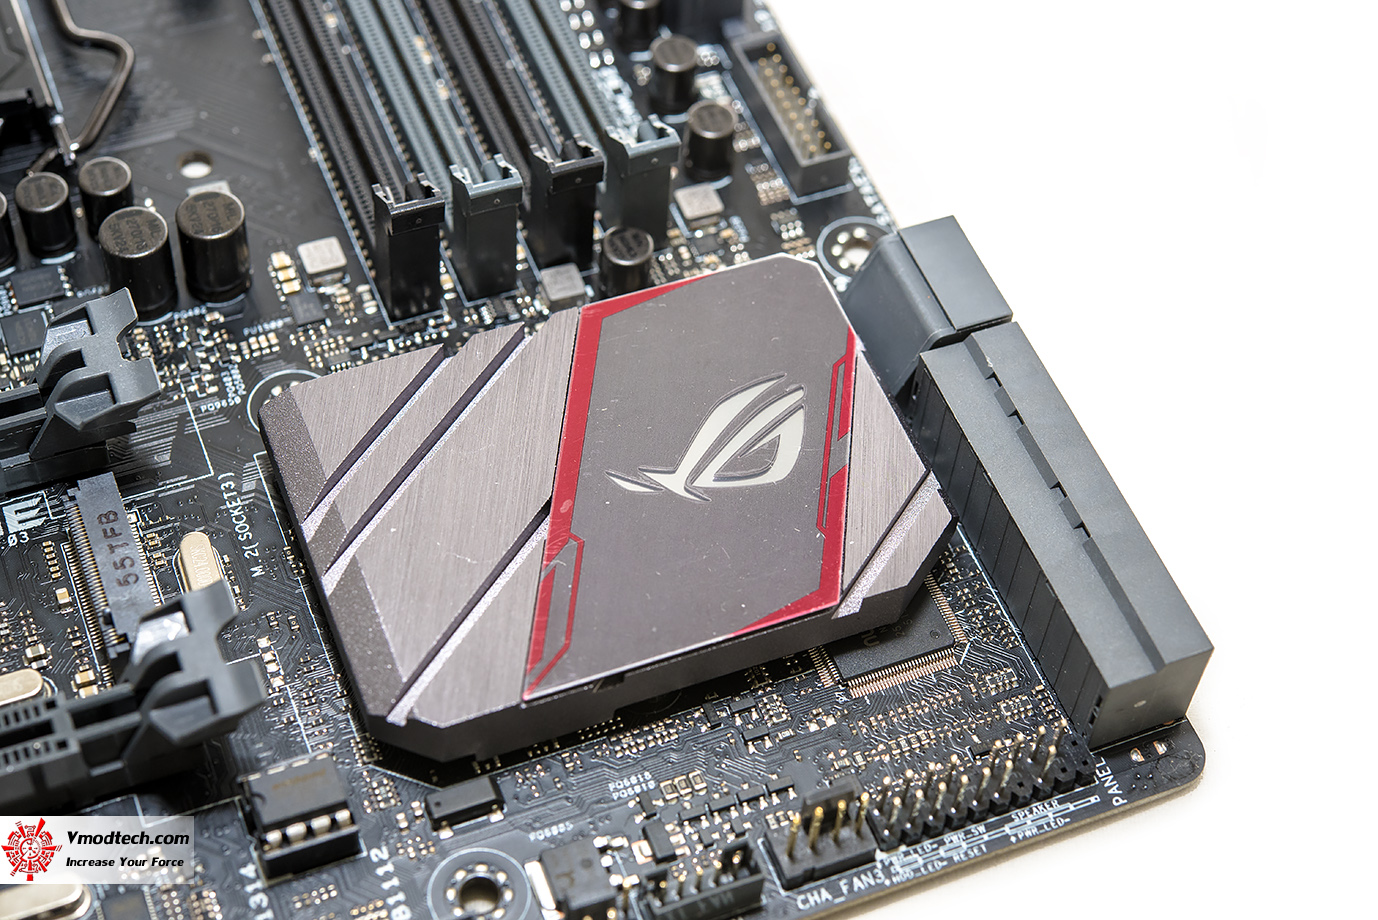 dsc 9110 ASUS ROG MAXIMUS VIII GENE Motherboard Review